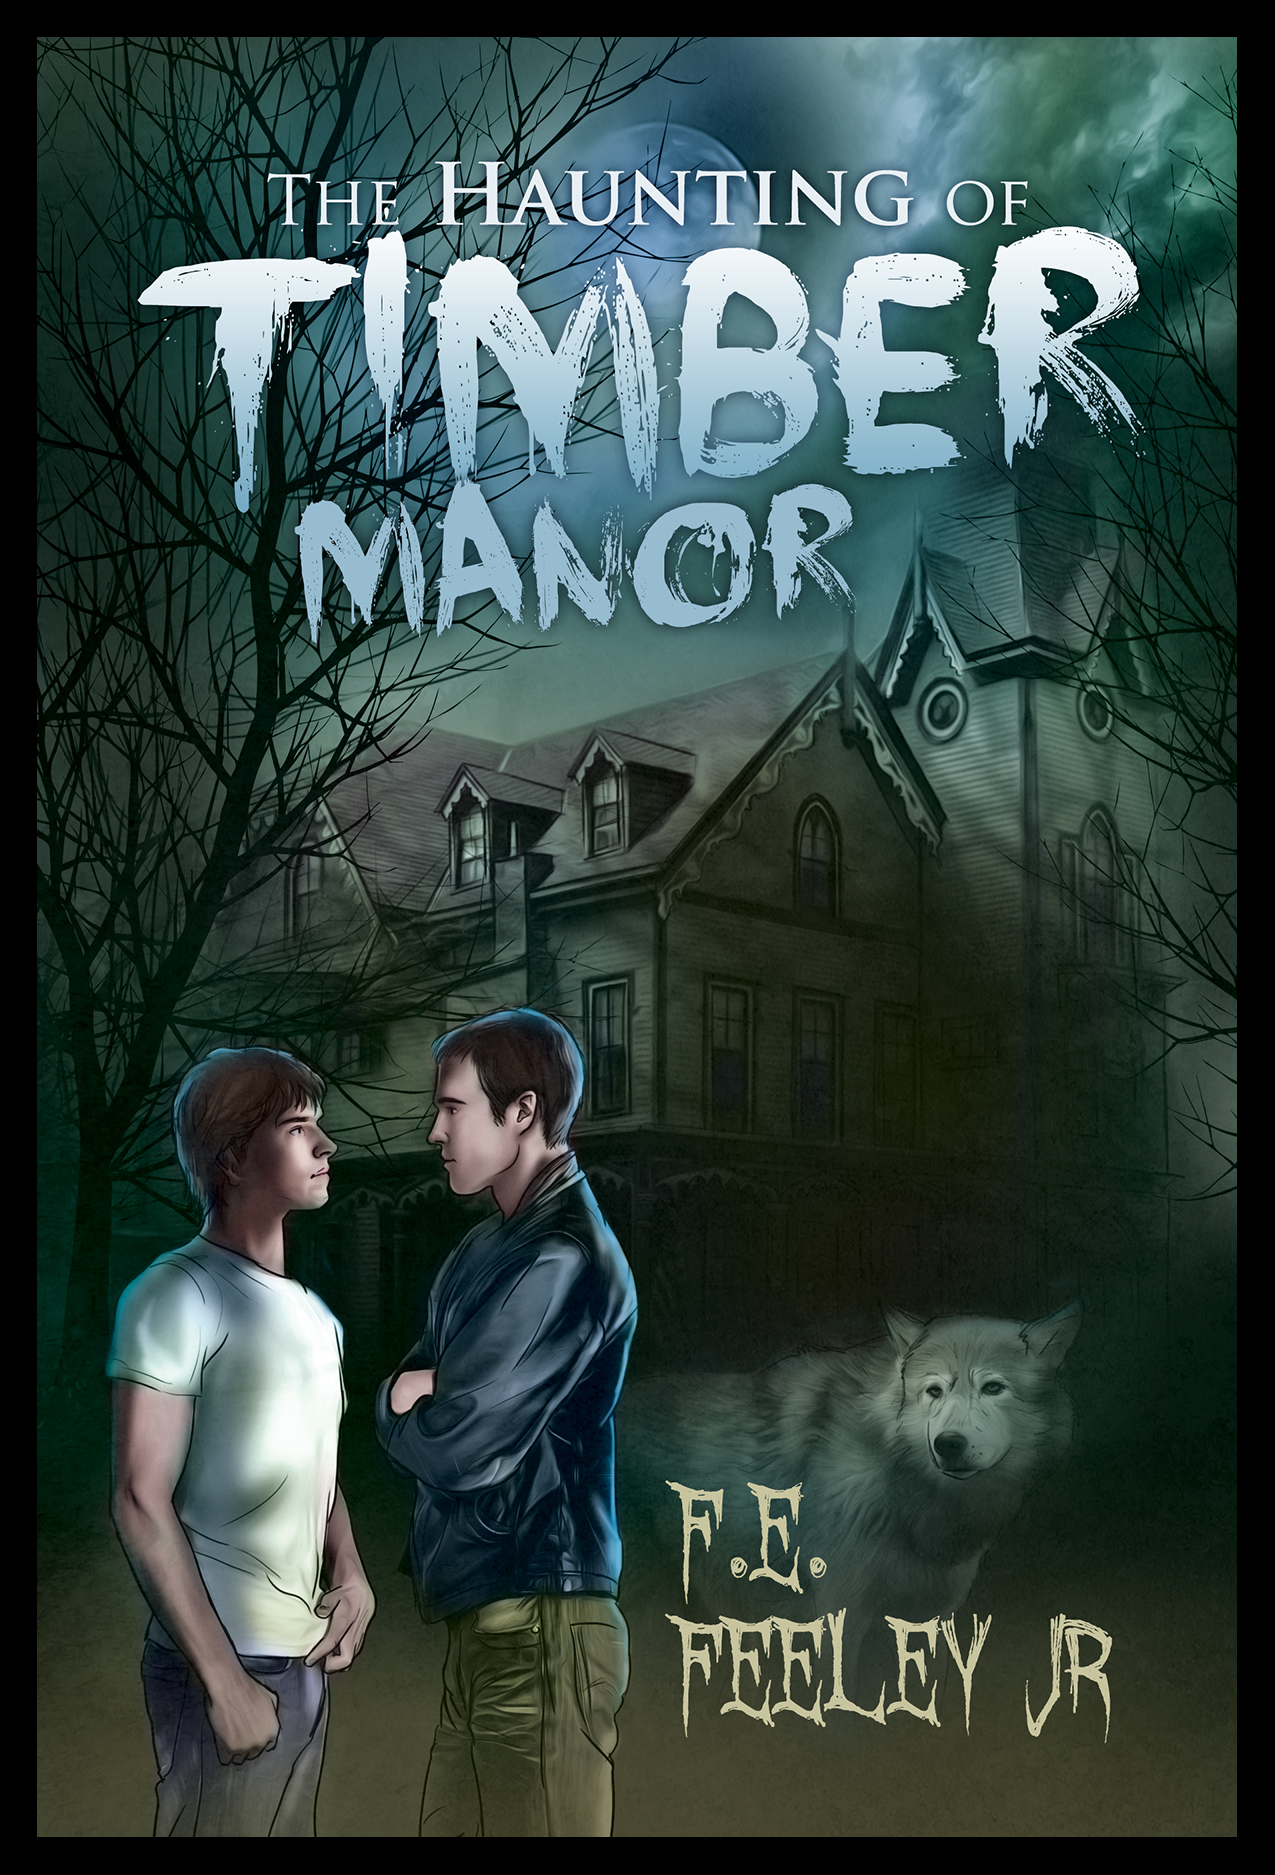 The Haunting of Timber Manor by F.E. Feeley Jr